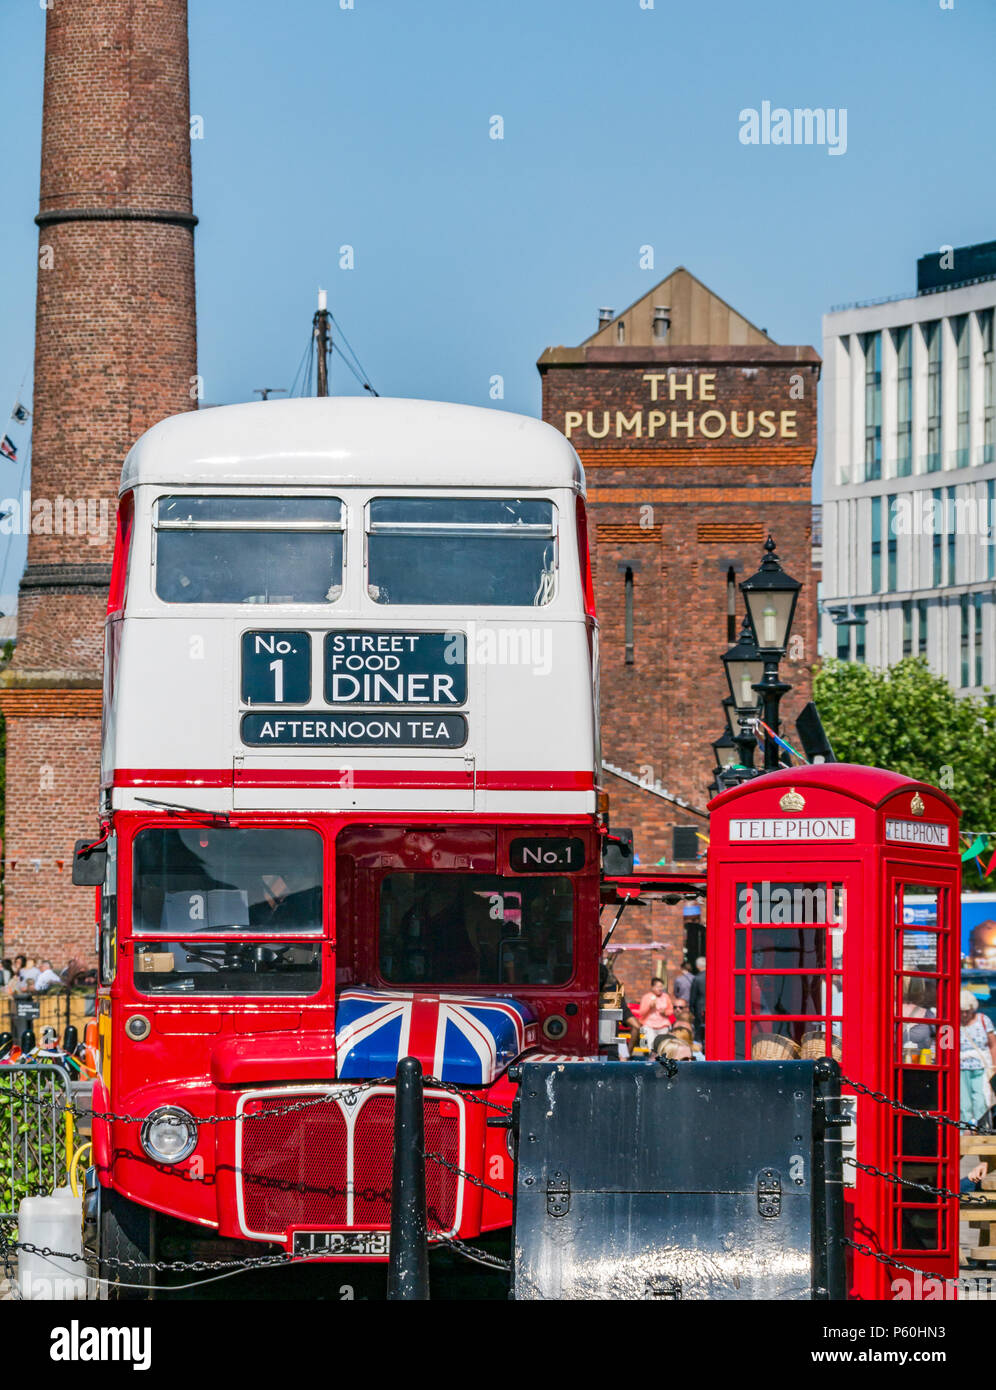 Traditional red London bus and British red telephone box, Albert Dock, Liverpool, England, UK with brick Pumphouse pub and brick tower in background - Stock Image